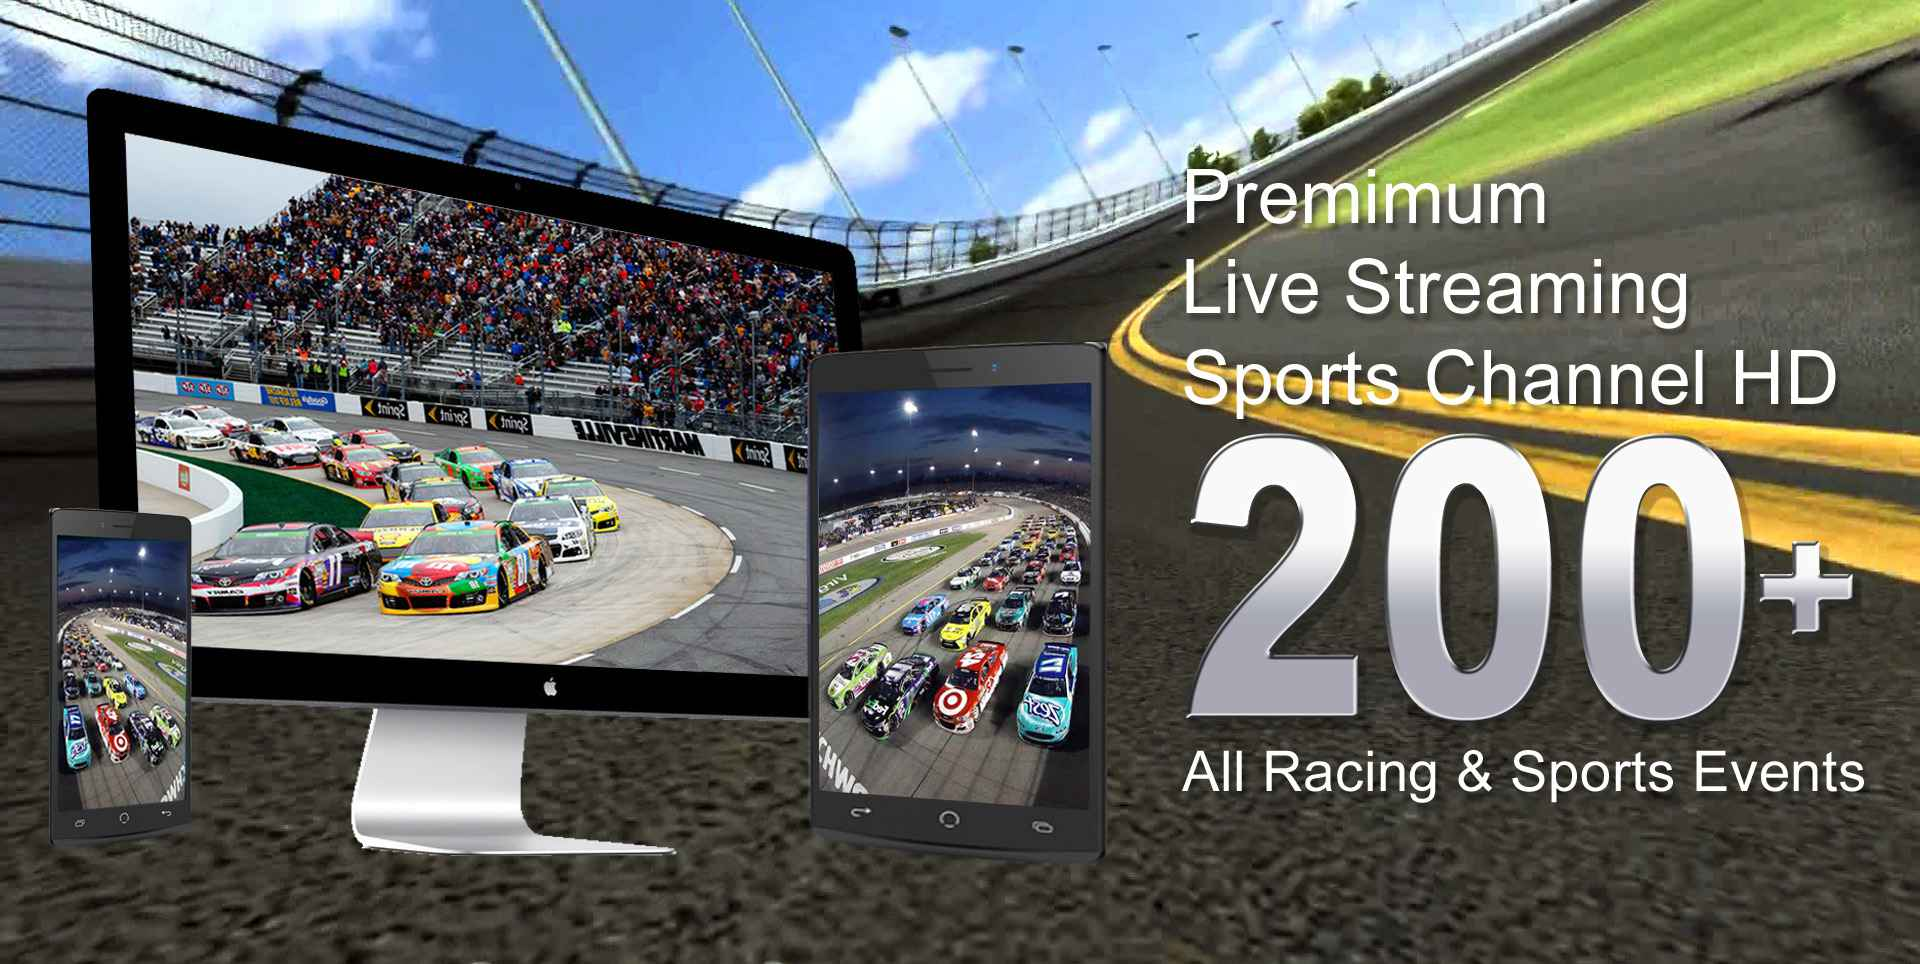 NASCAR XFINITY Series at Bristol 2015